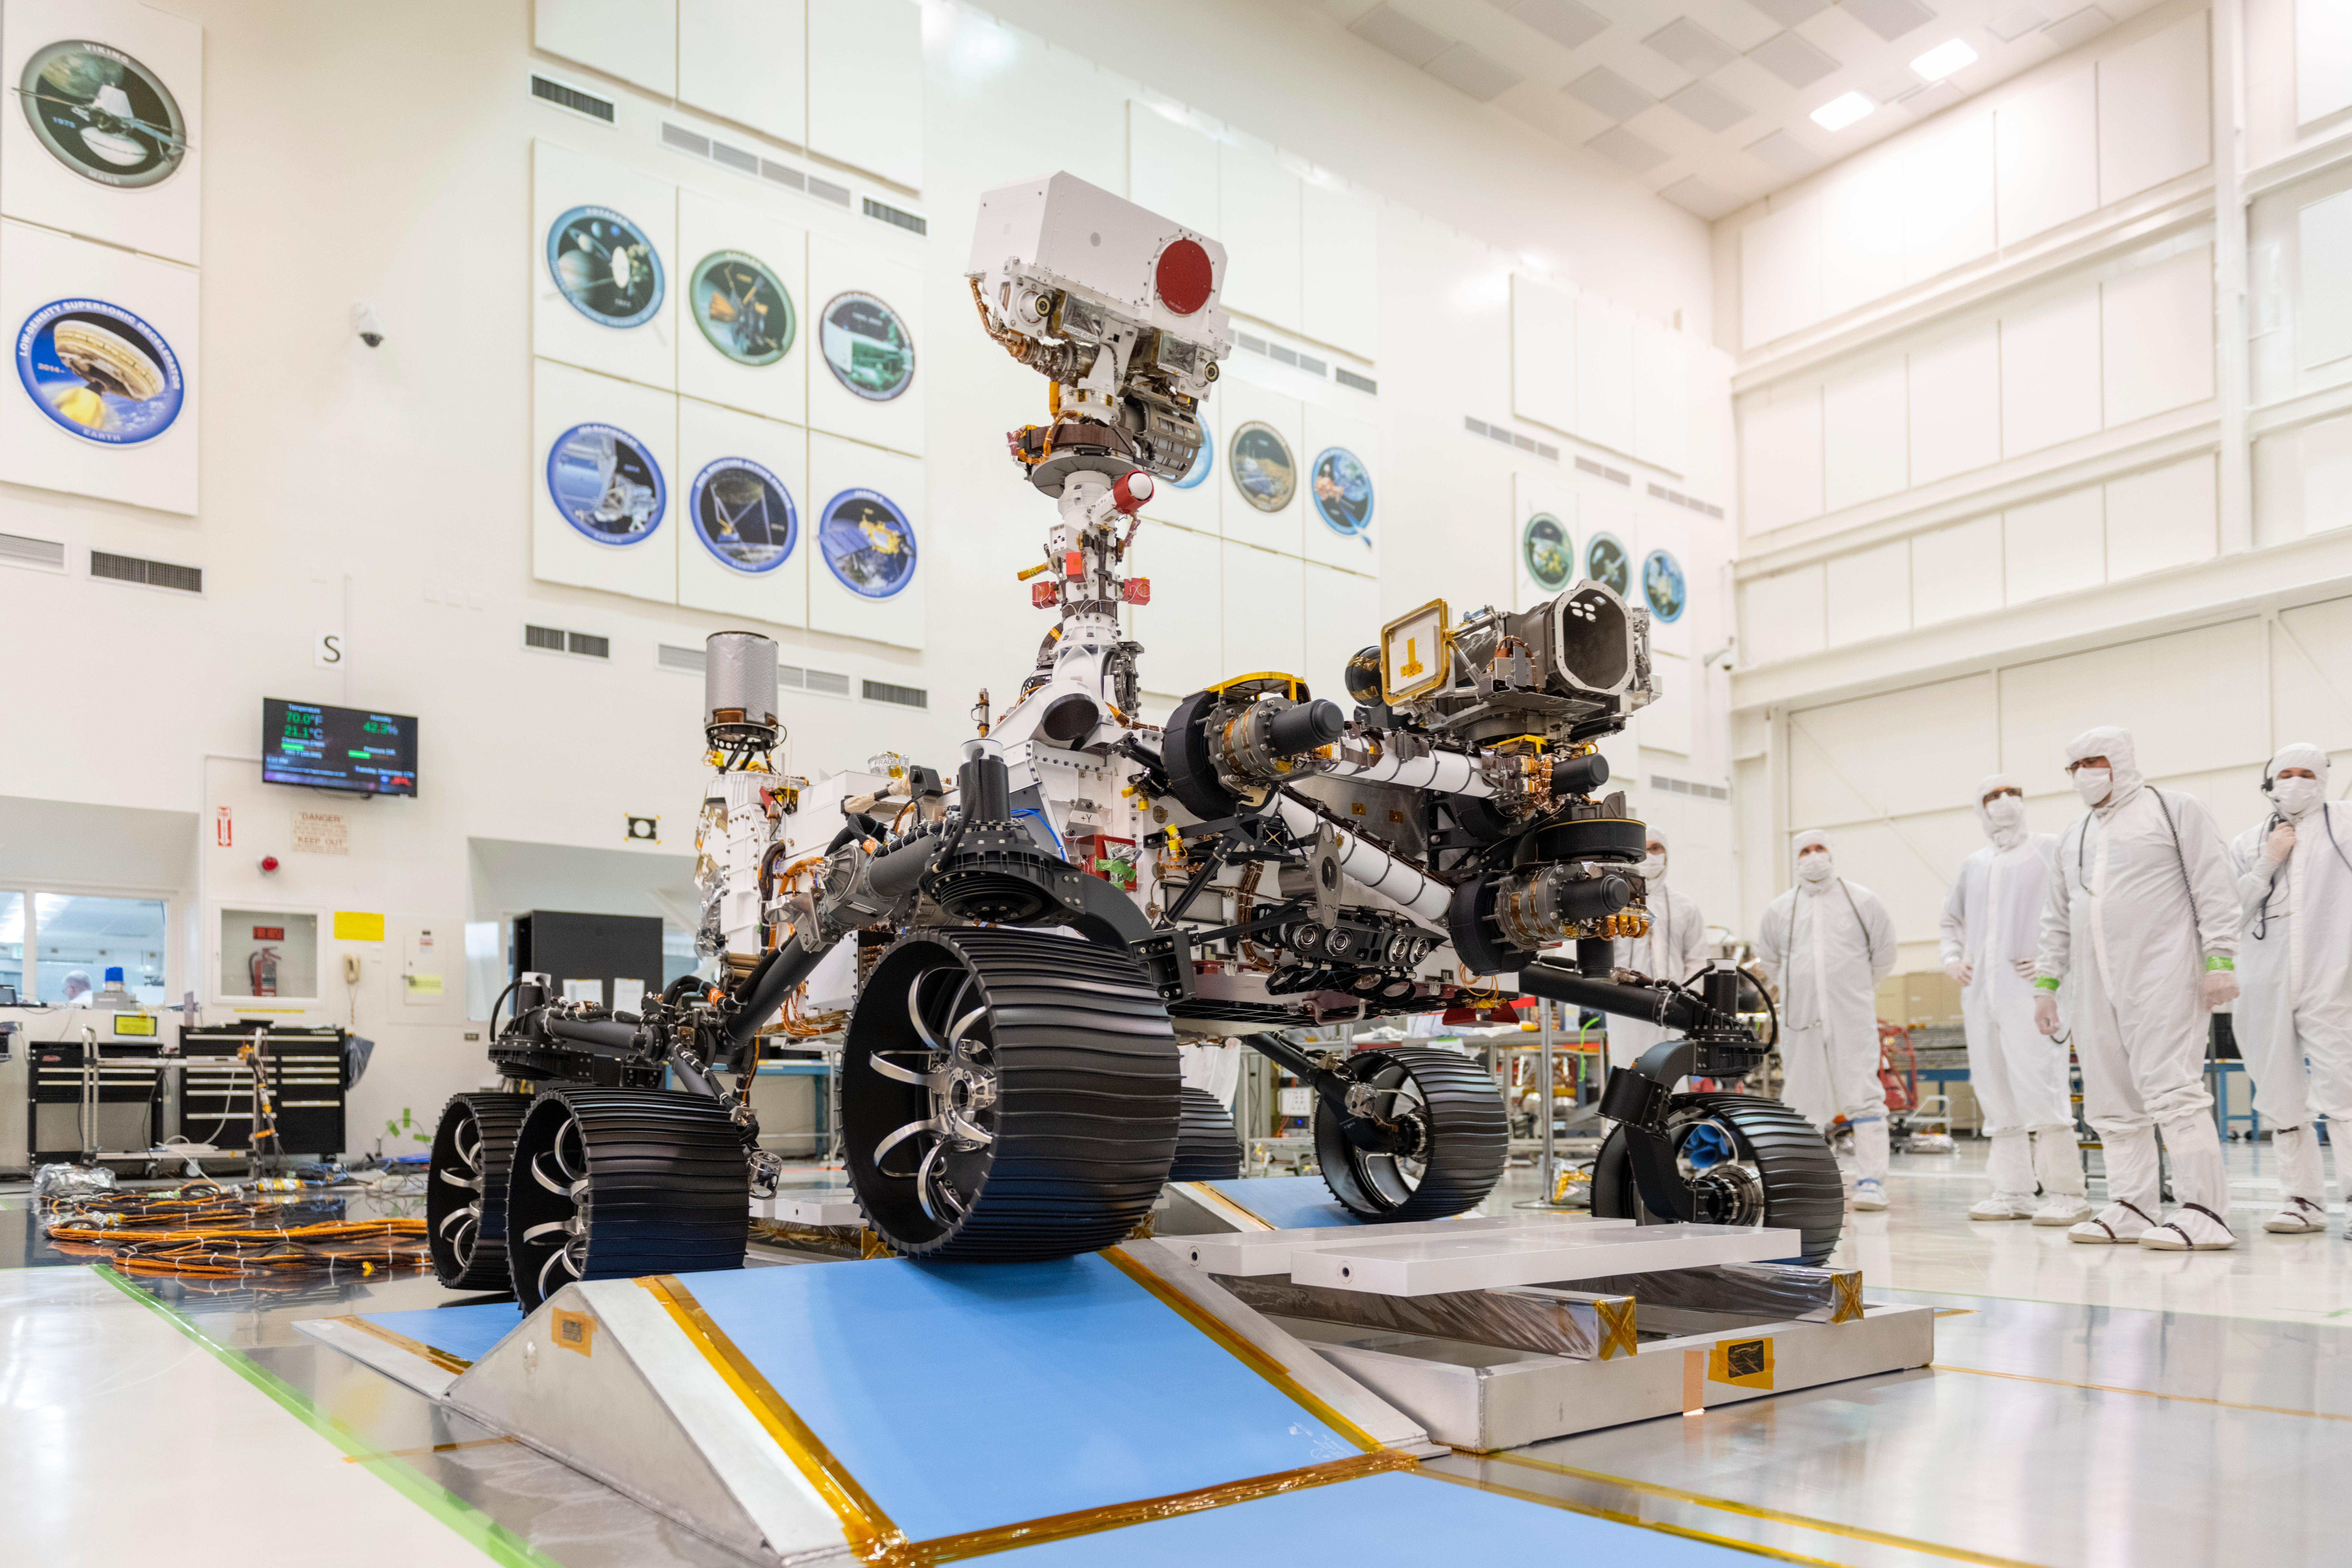 Mars 2020 becomes Perseverance